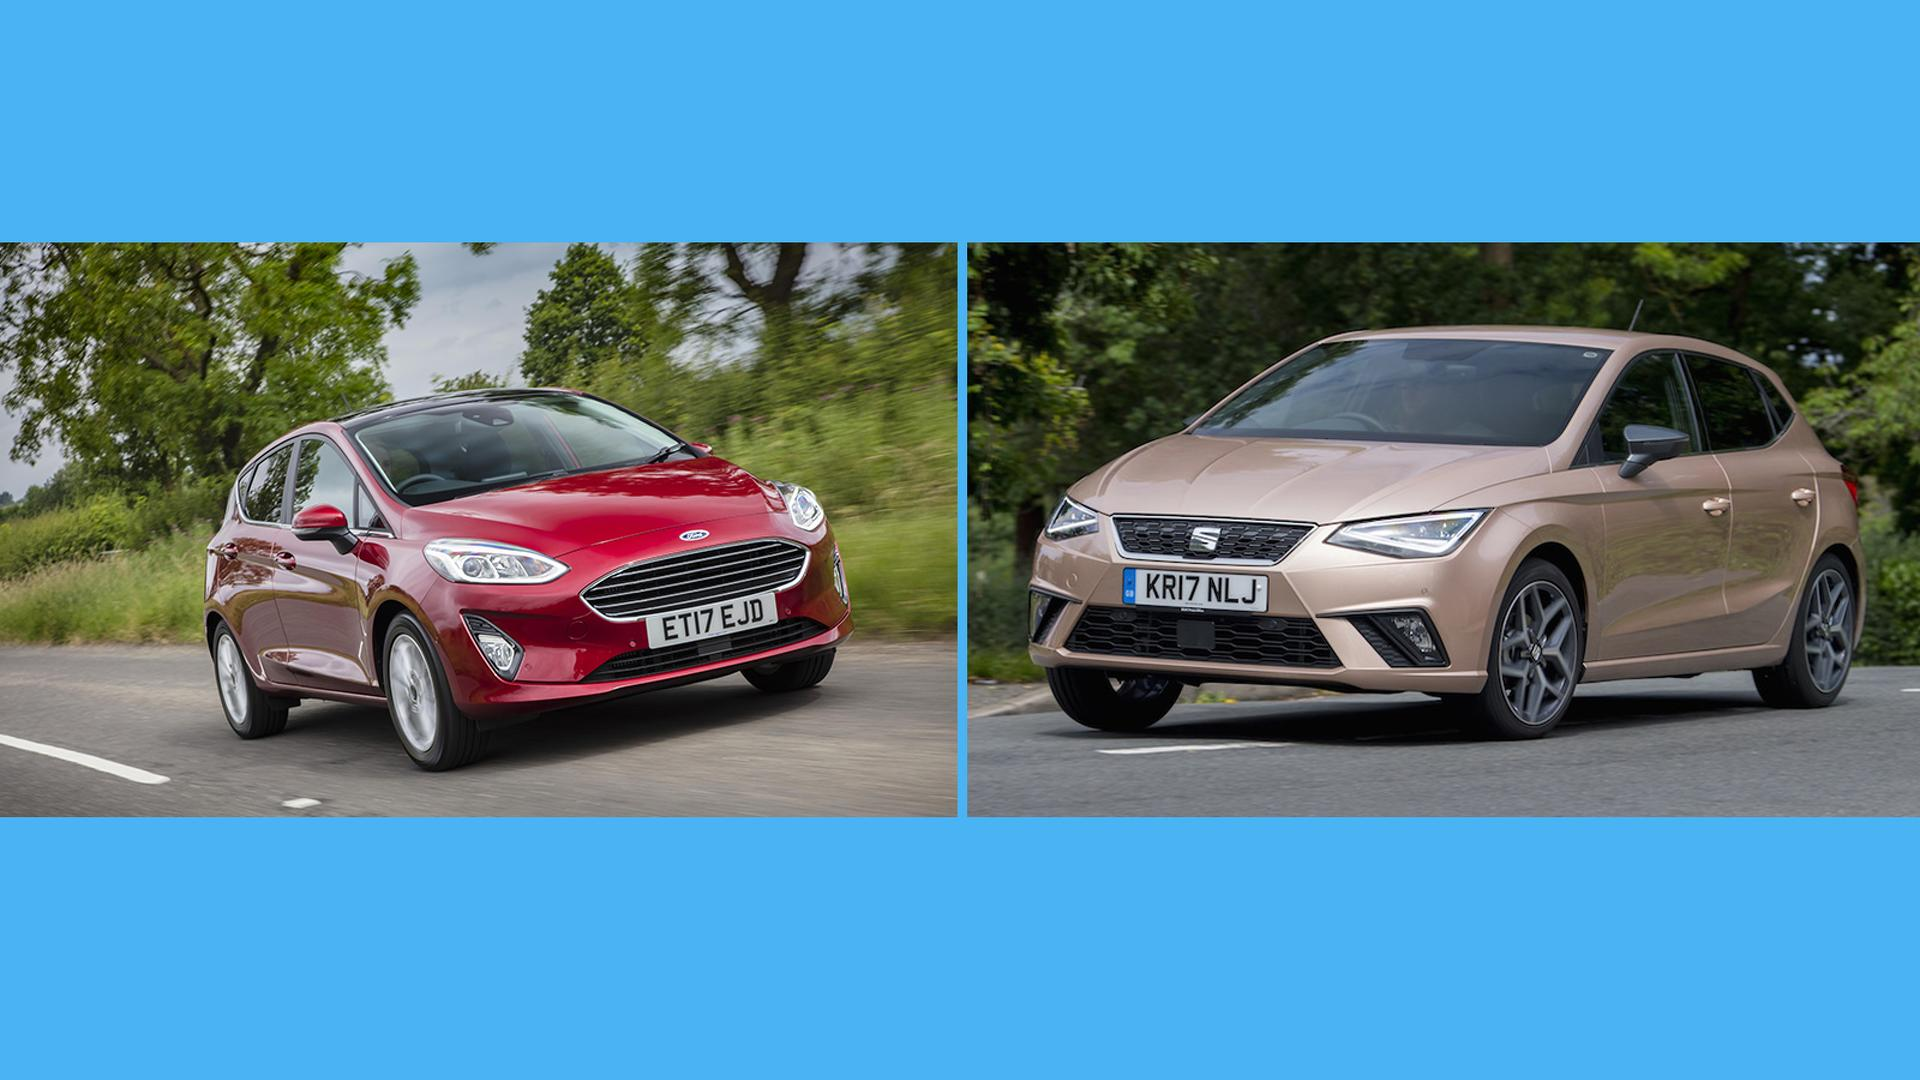 2017 Ford Fiesta Vs Seat Ibiza The Numbers